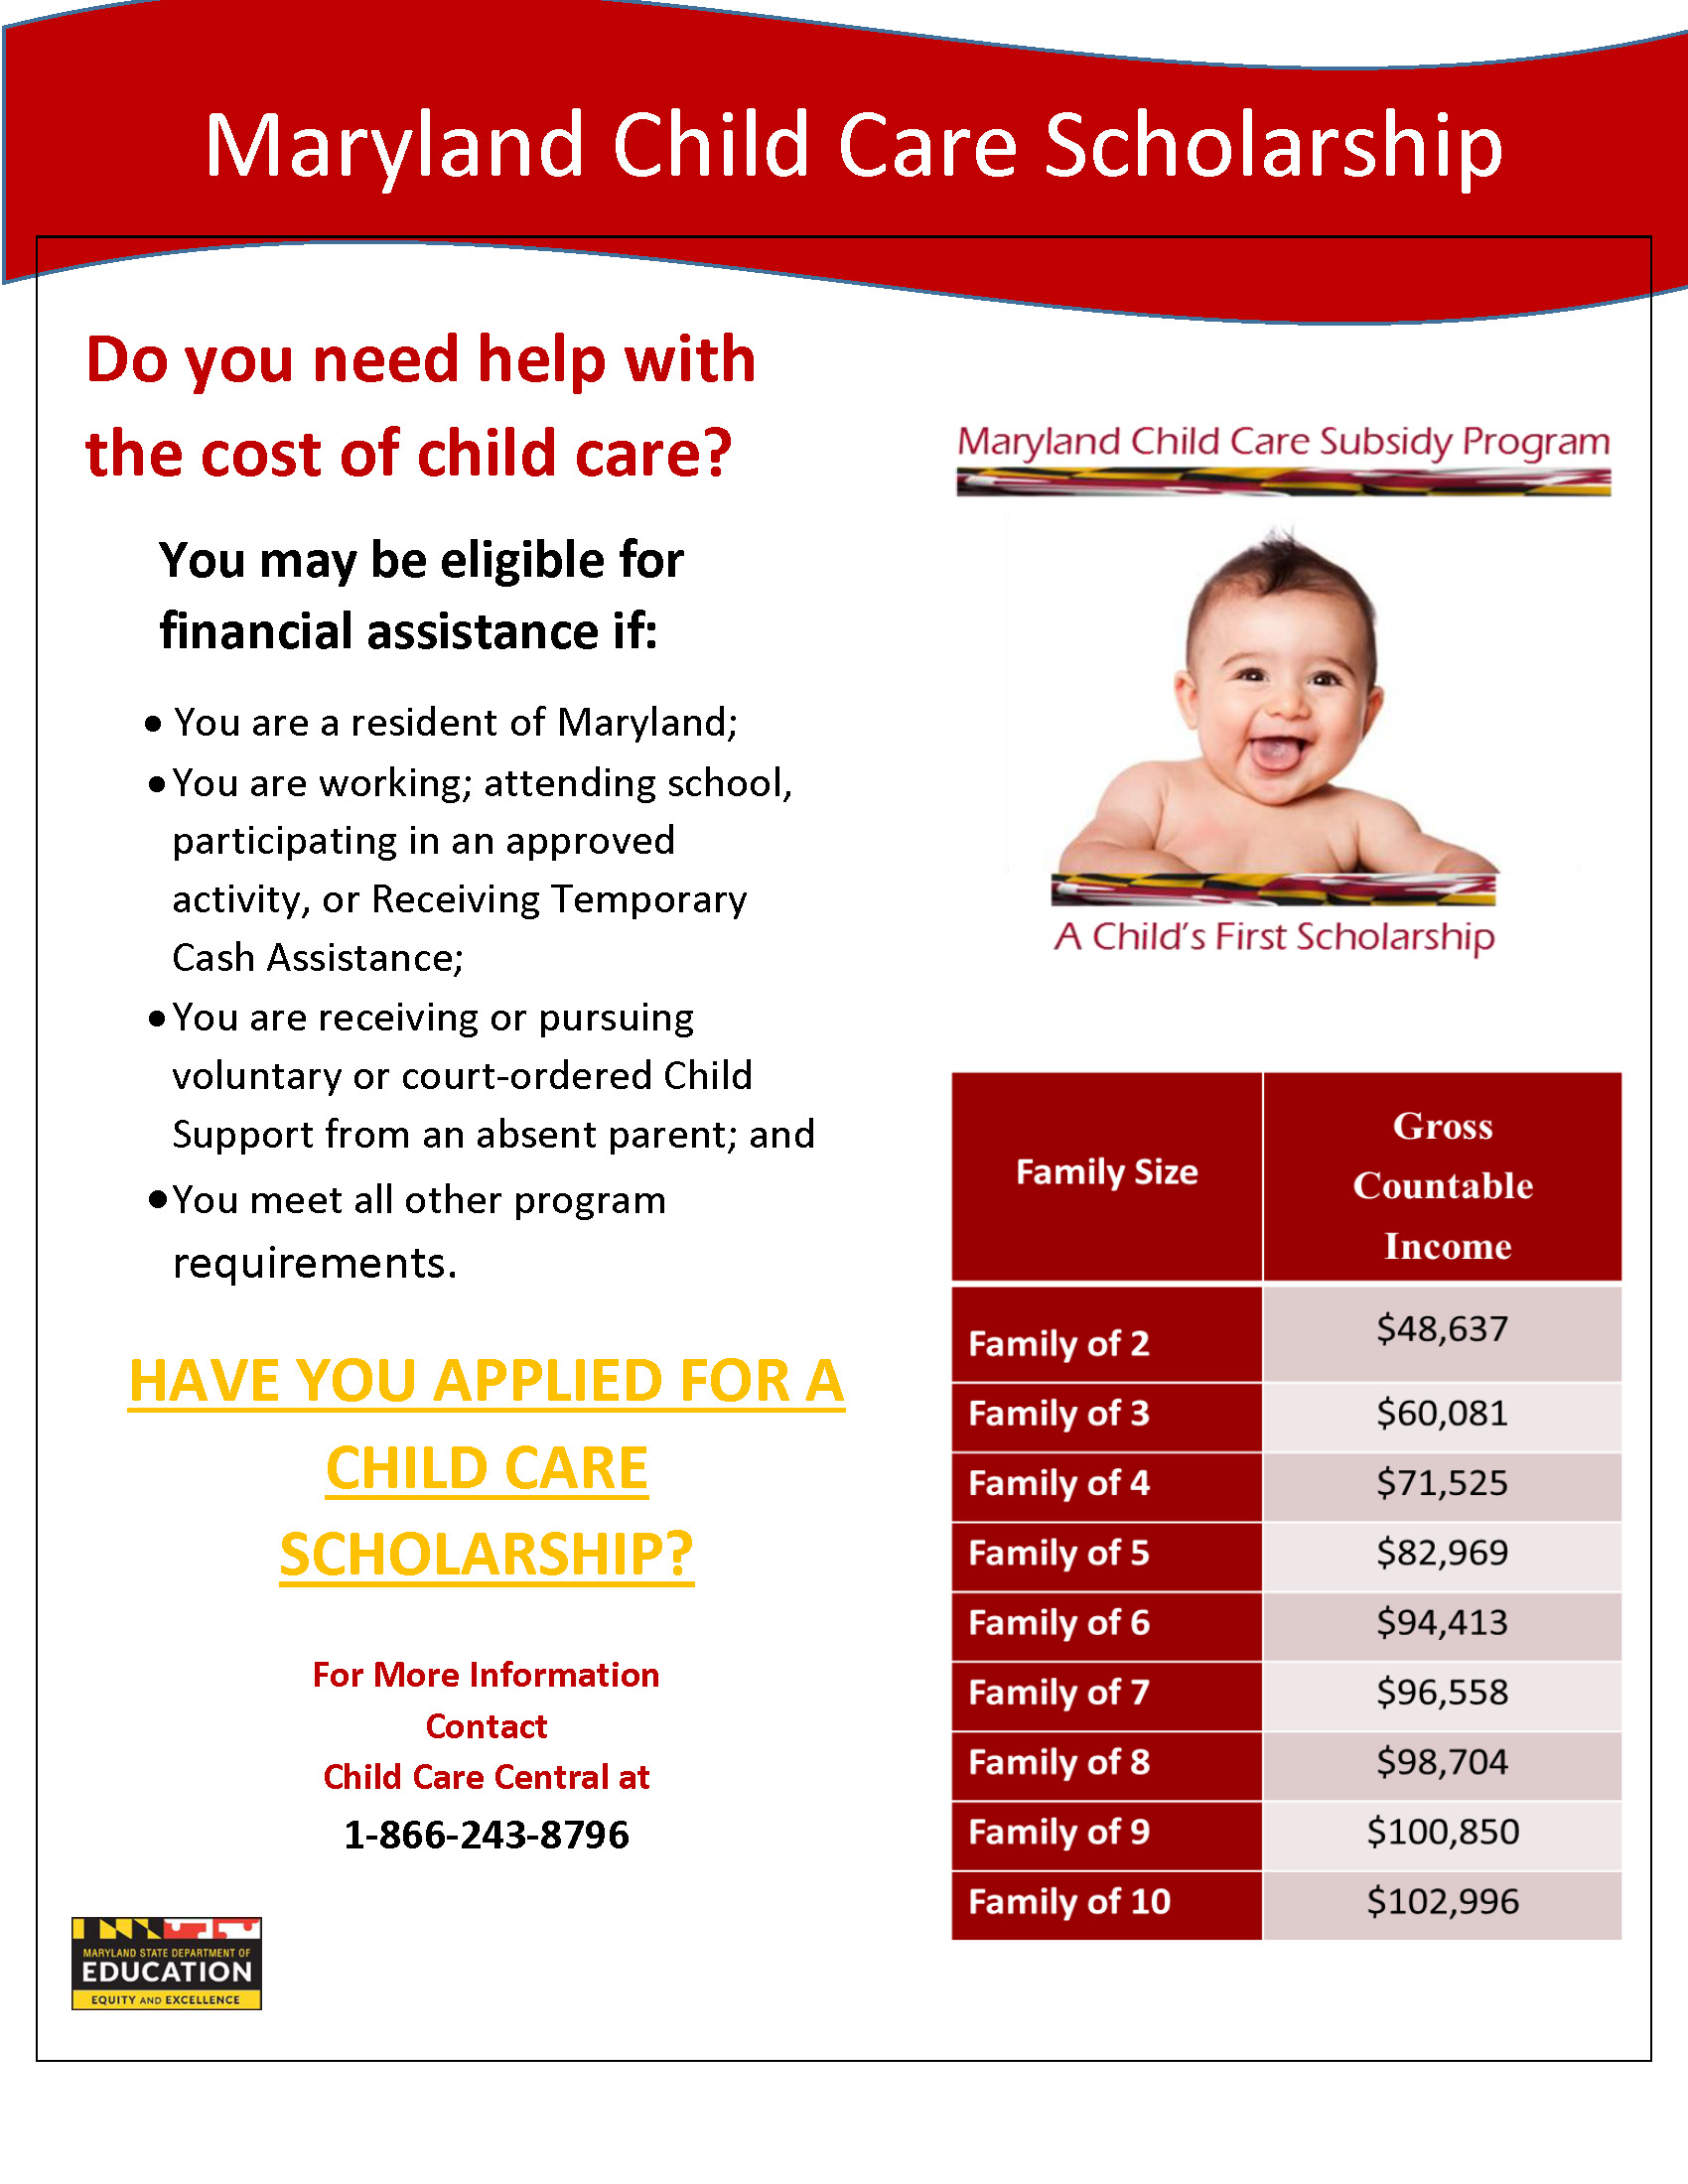 Child Care Scholarships